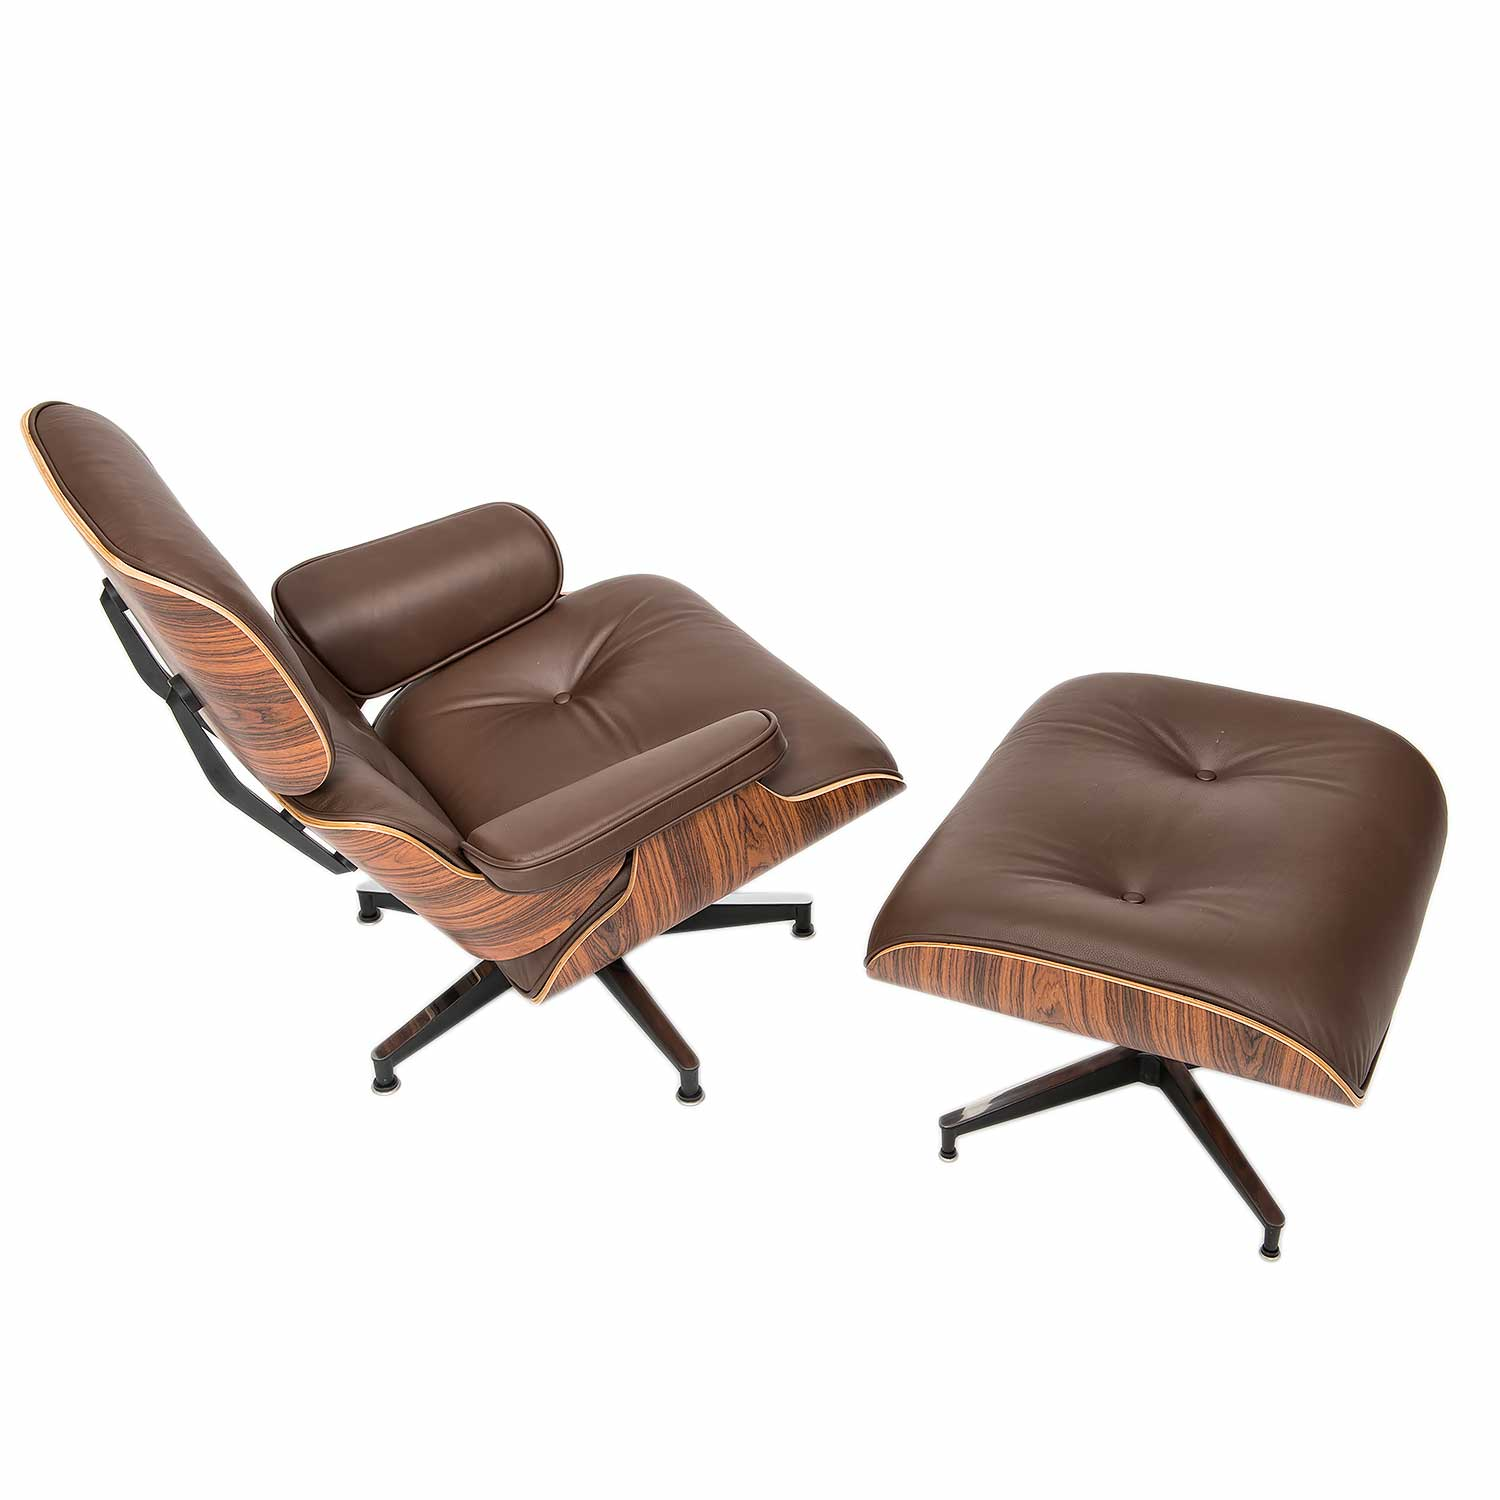 Charles & Ray Eames Sessel Charles Eames Chair And Ottoman